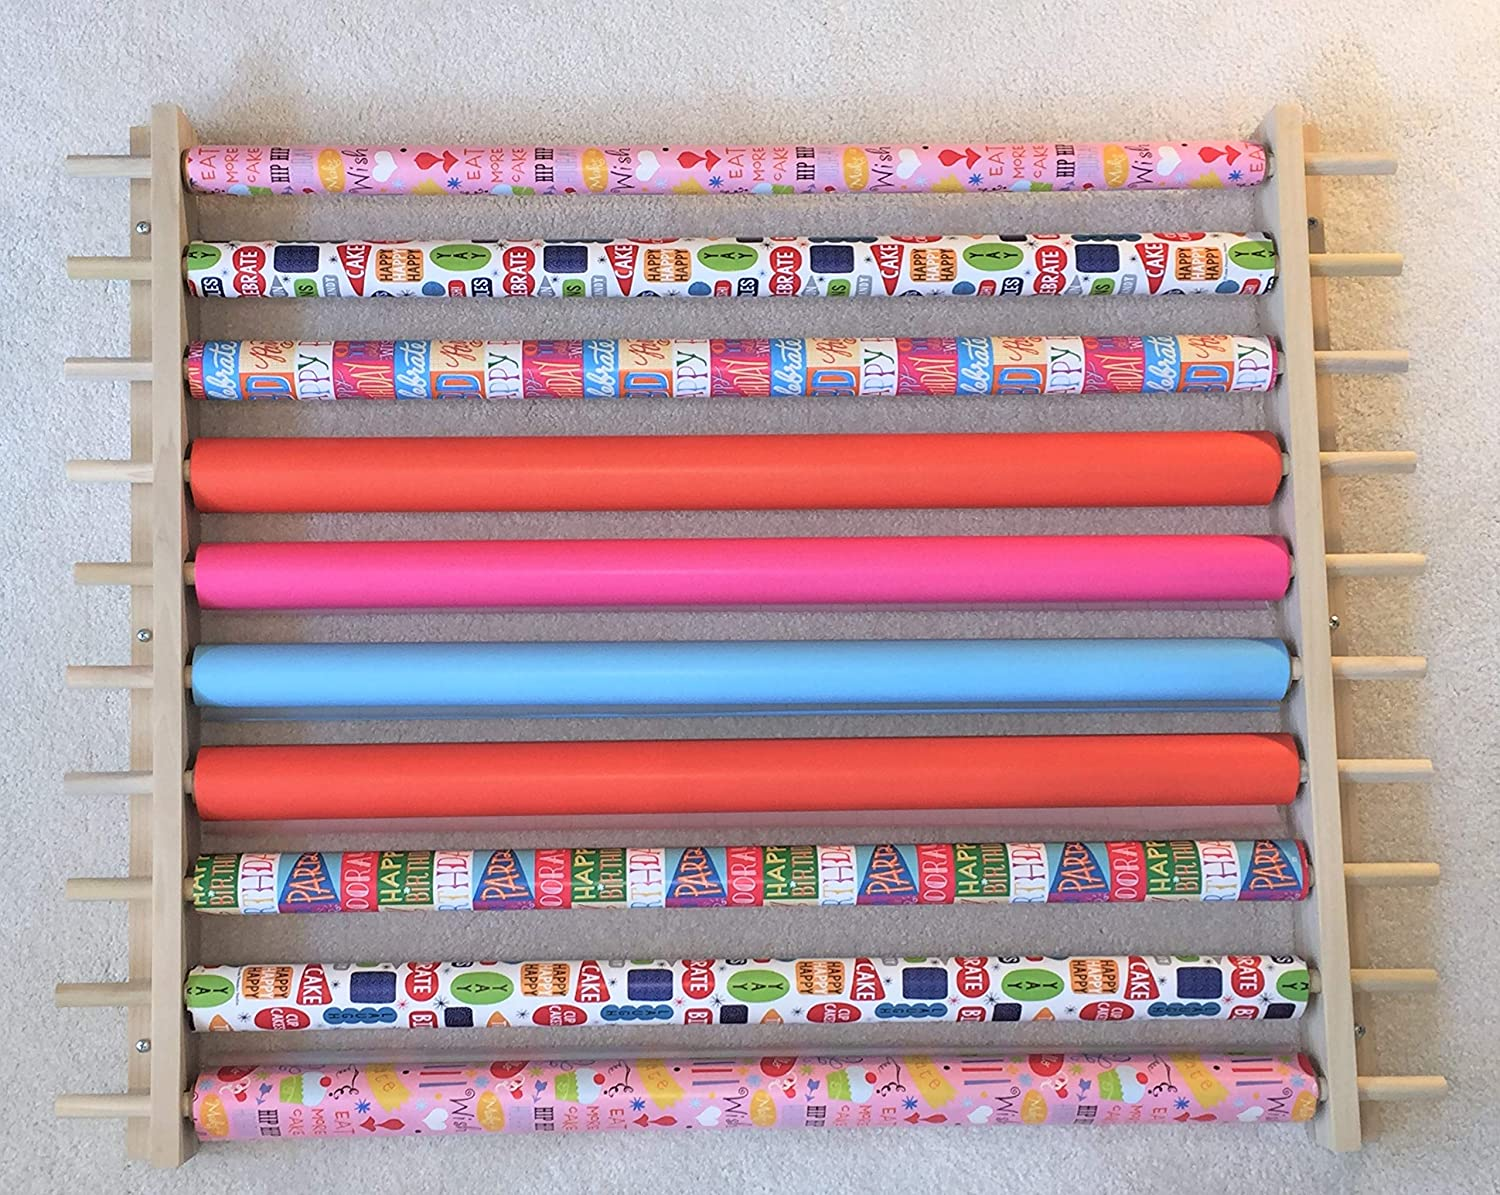 Dispensing Rack for Gift Wrapping Paper Cellophane /& Other Crafts or Wrap Items on a Roll Adjustable Width Easy Wall Mount Hardware Included. Storage Station Organizer Holds 10 Rows Ribbons